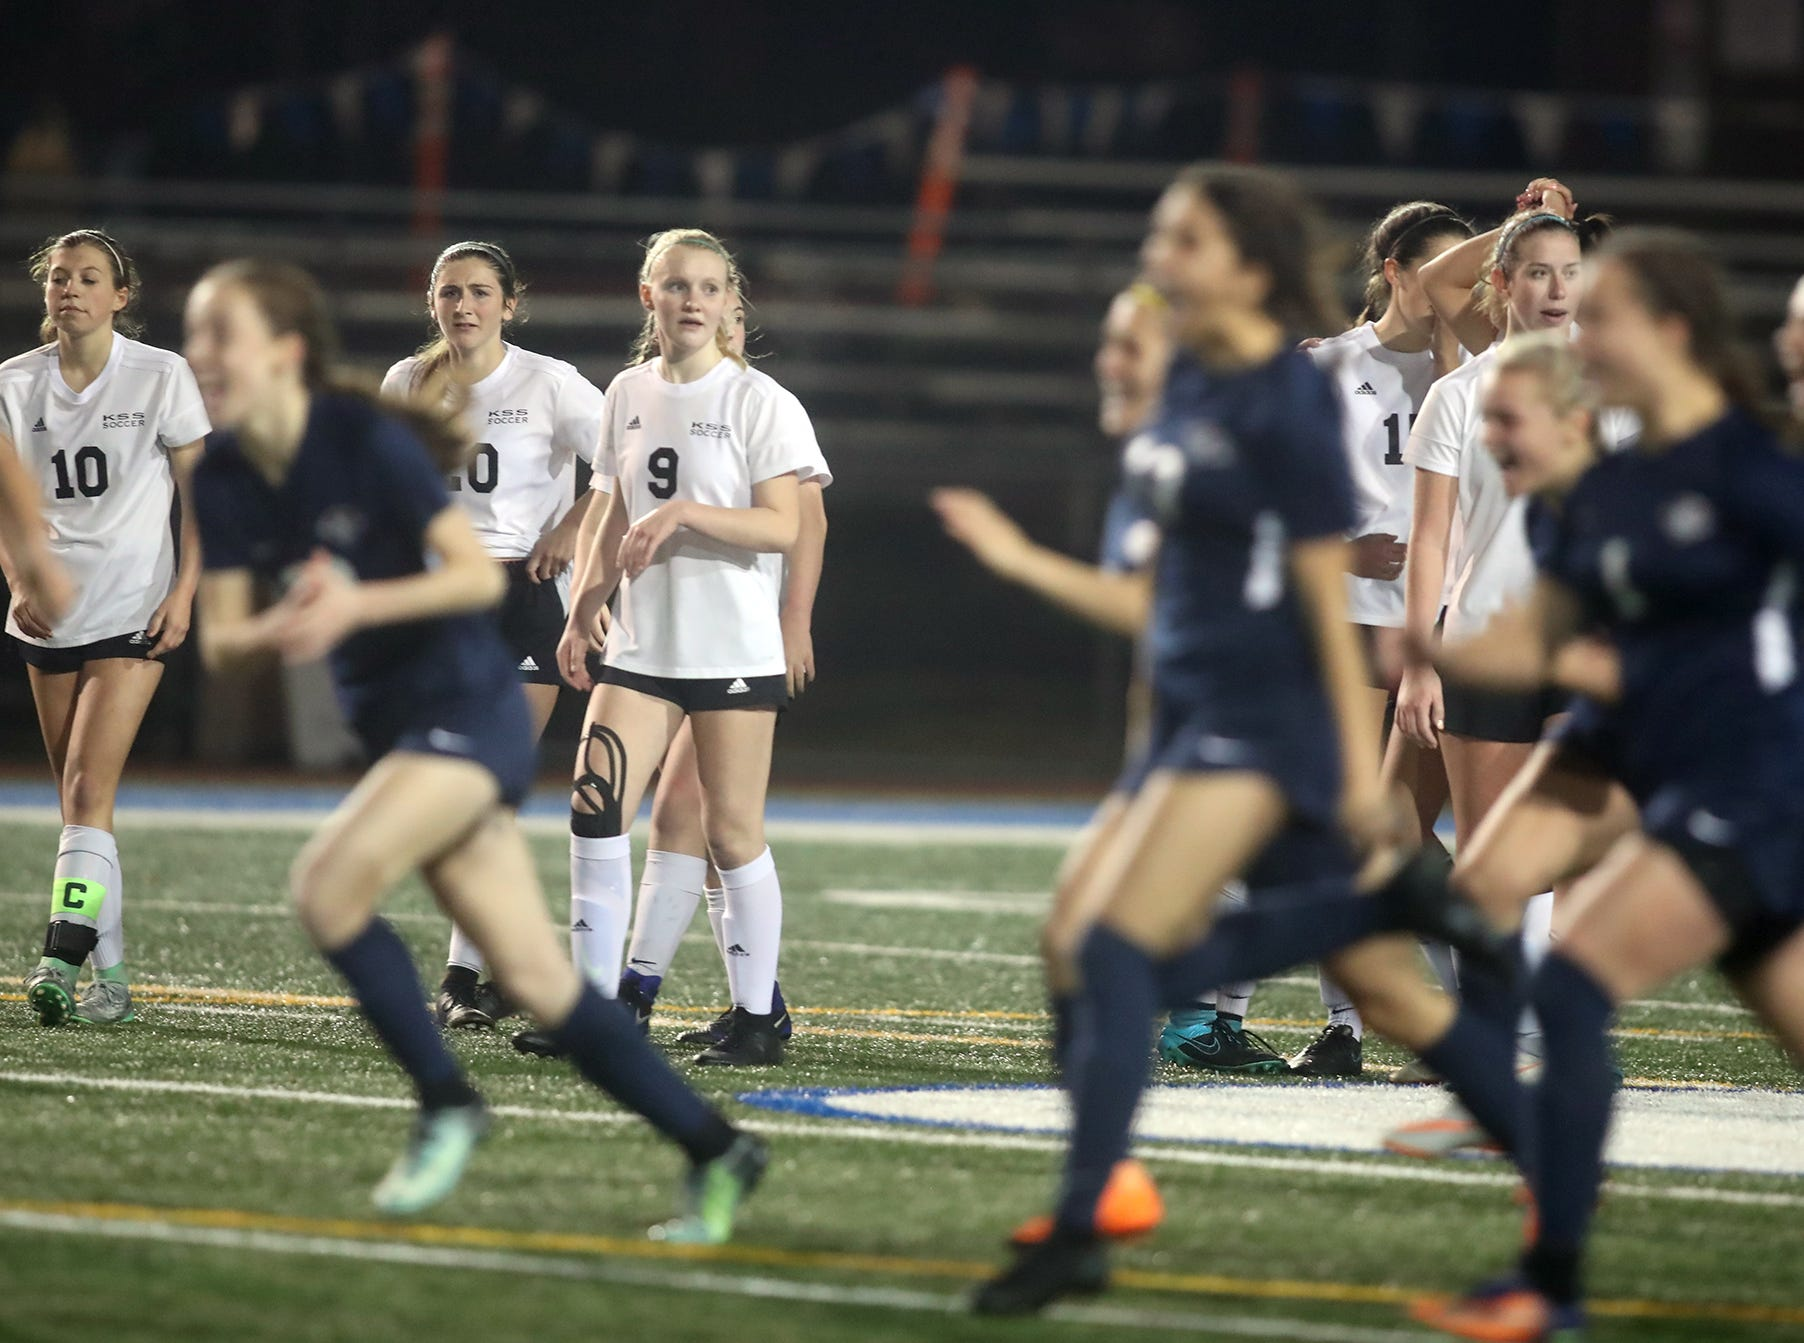 The Klahowya girls soccer penalty kickers react as the  KingÕs Way team rushes the field after losing on penalty kicks in overtime in the 2018 Girls Soccer State Championship 1A semifinal game at Shoreline Stadium on Friday, November 16, 2018.